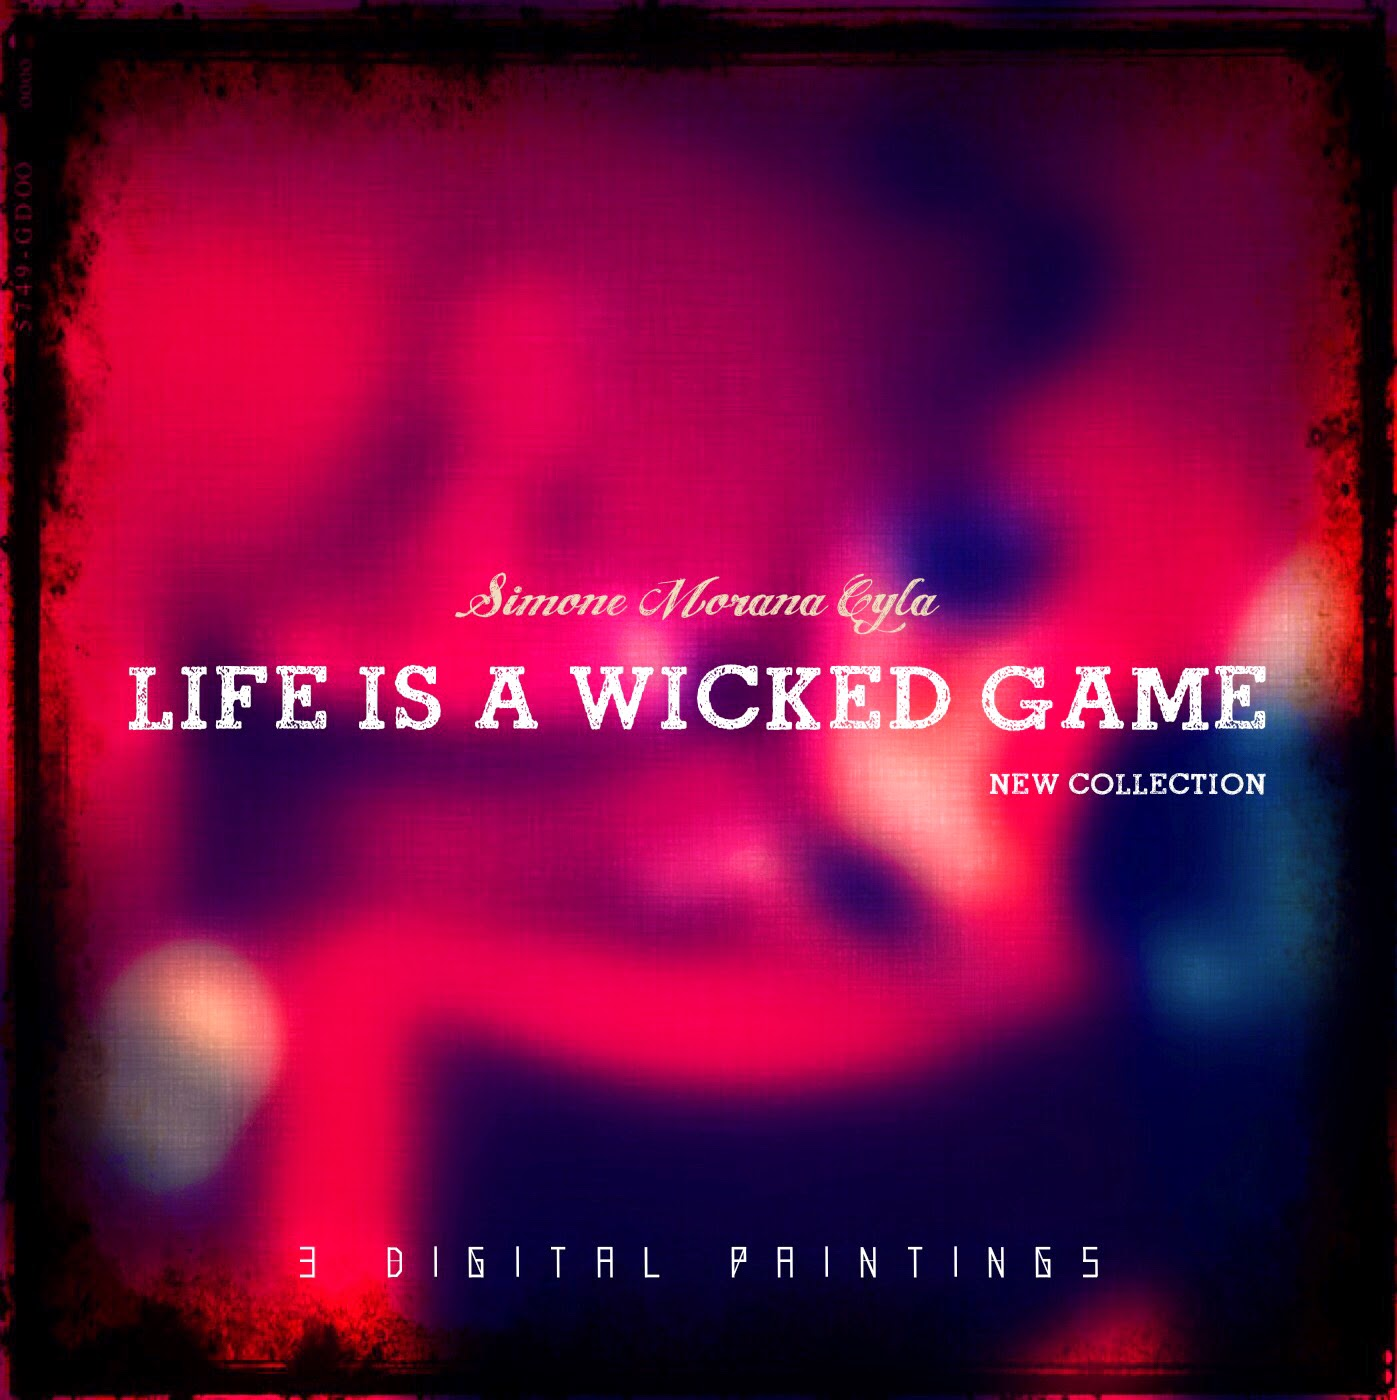 LIFE IS A WICKED GAME - Collection of 3 Digital Paintings - Simone Morana Cyla © 2014